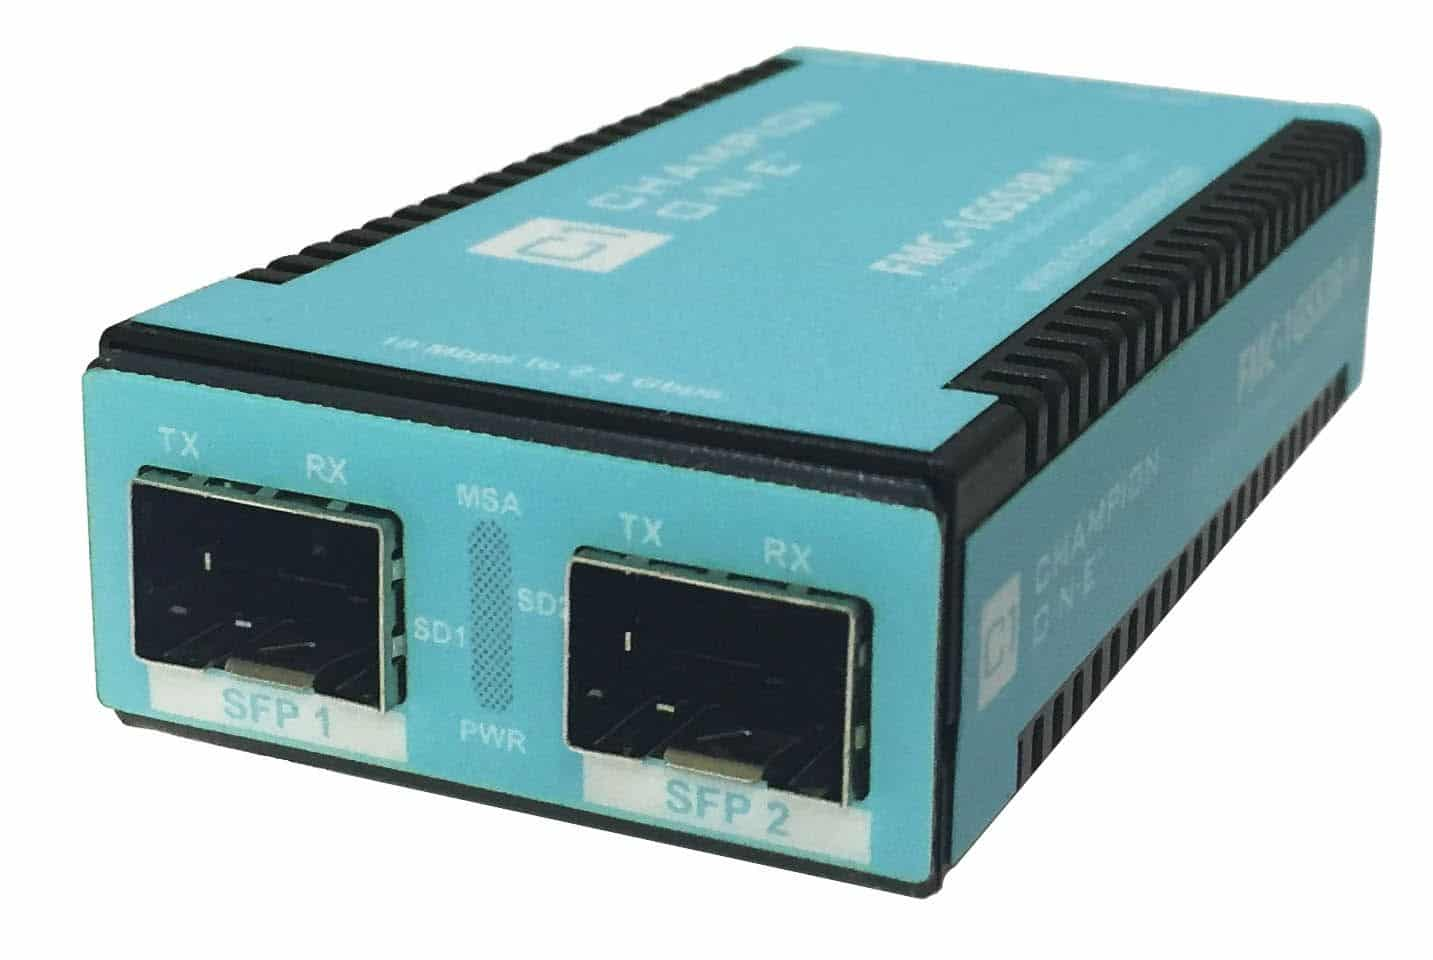 10M-2.4G 3R Extender w/ Temp-Hardened Chassis – SFP to SFP